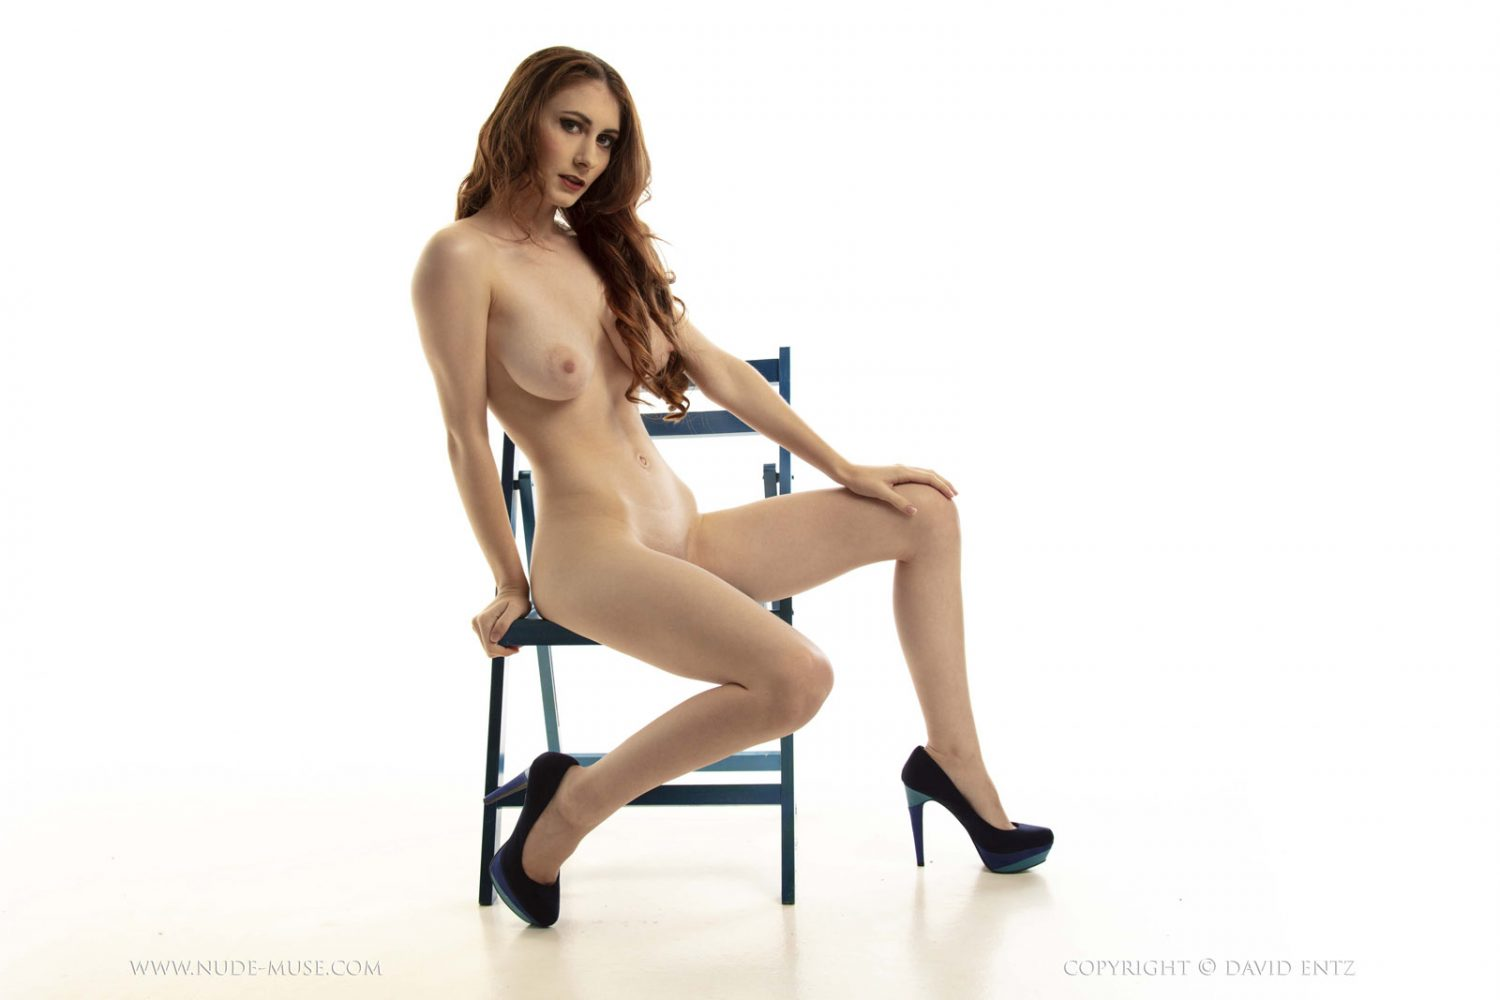 All Over 50 Nude Pics penni blue chair nude muse - curvy erotic